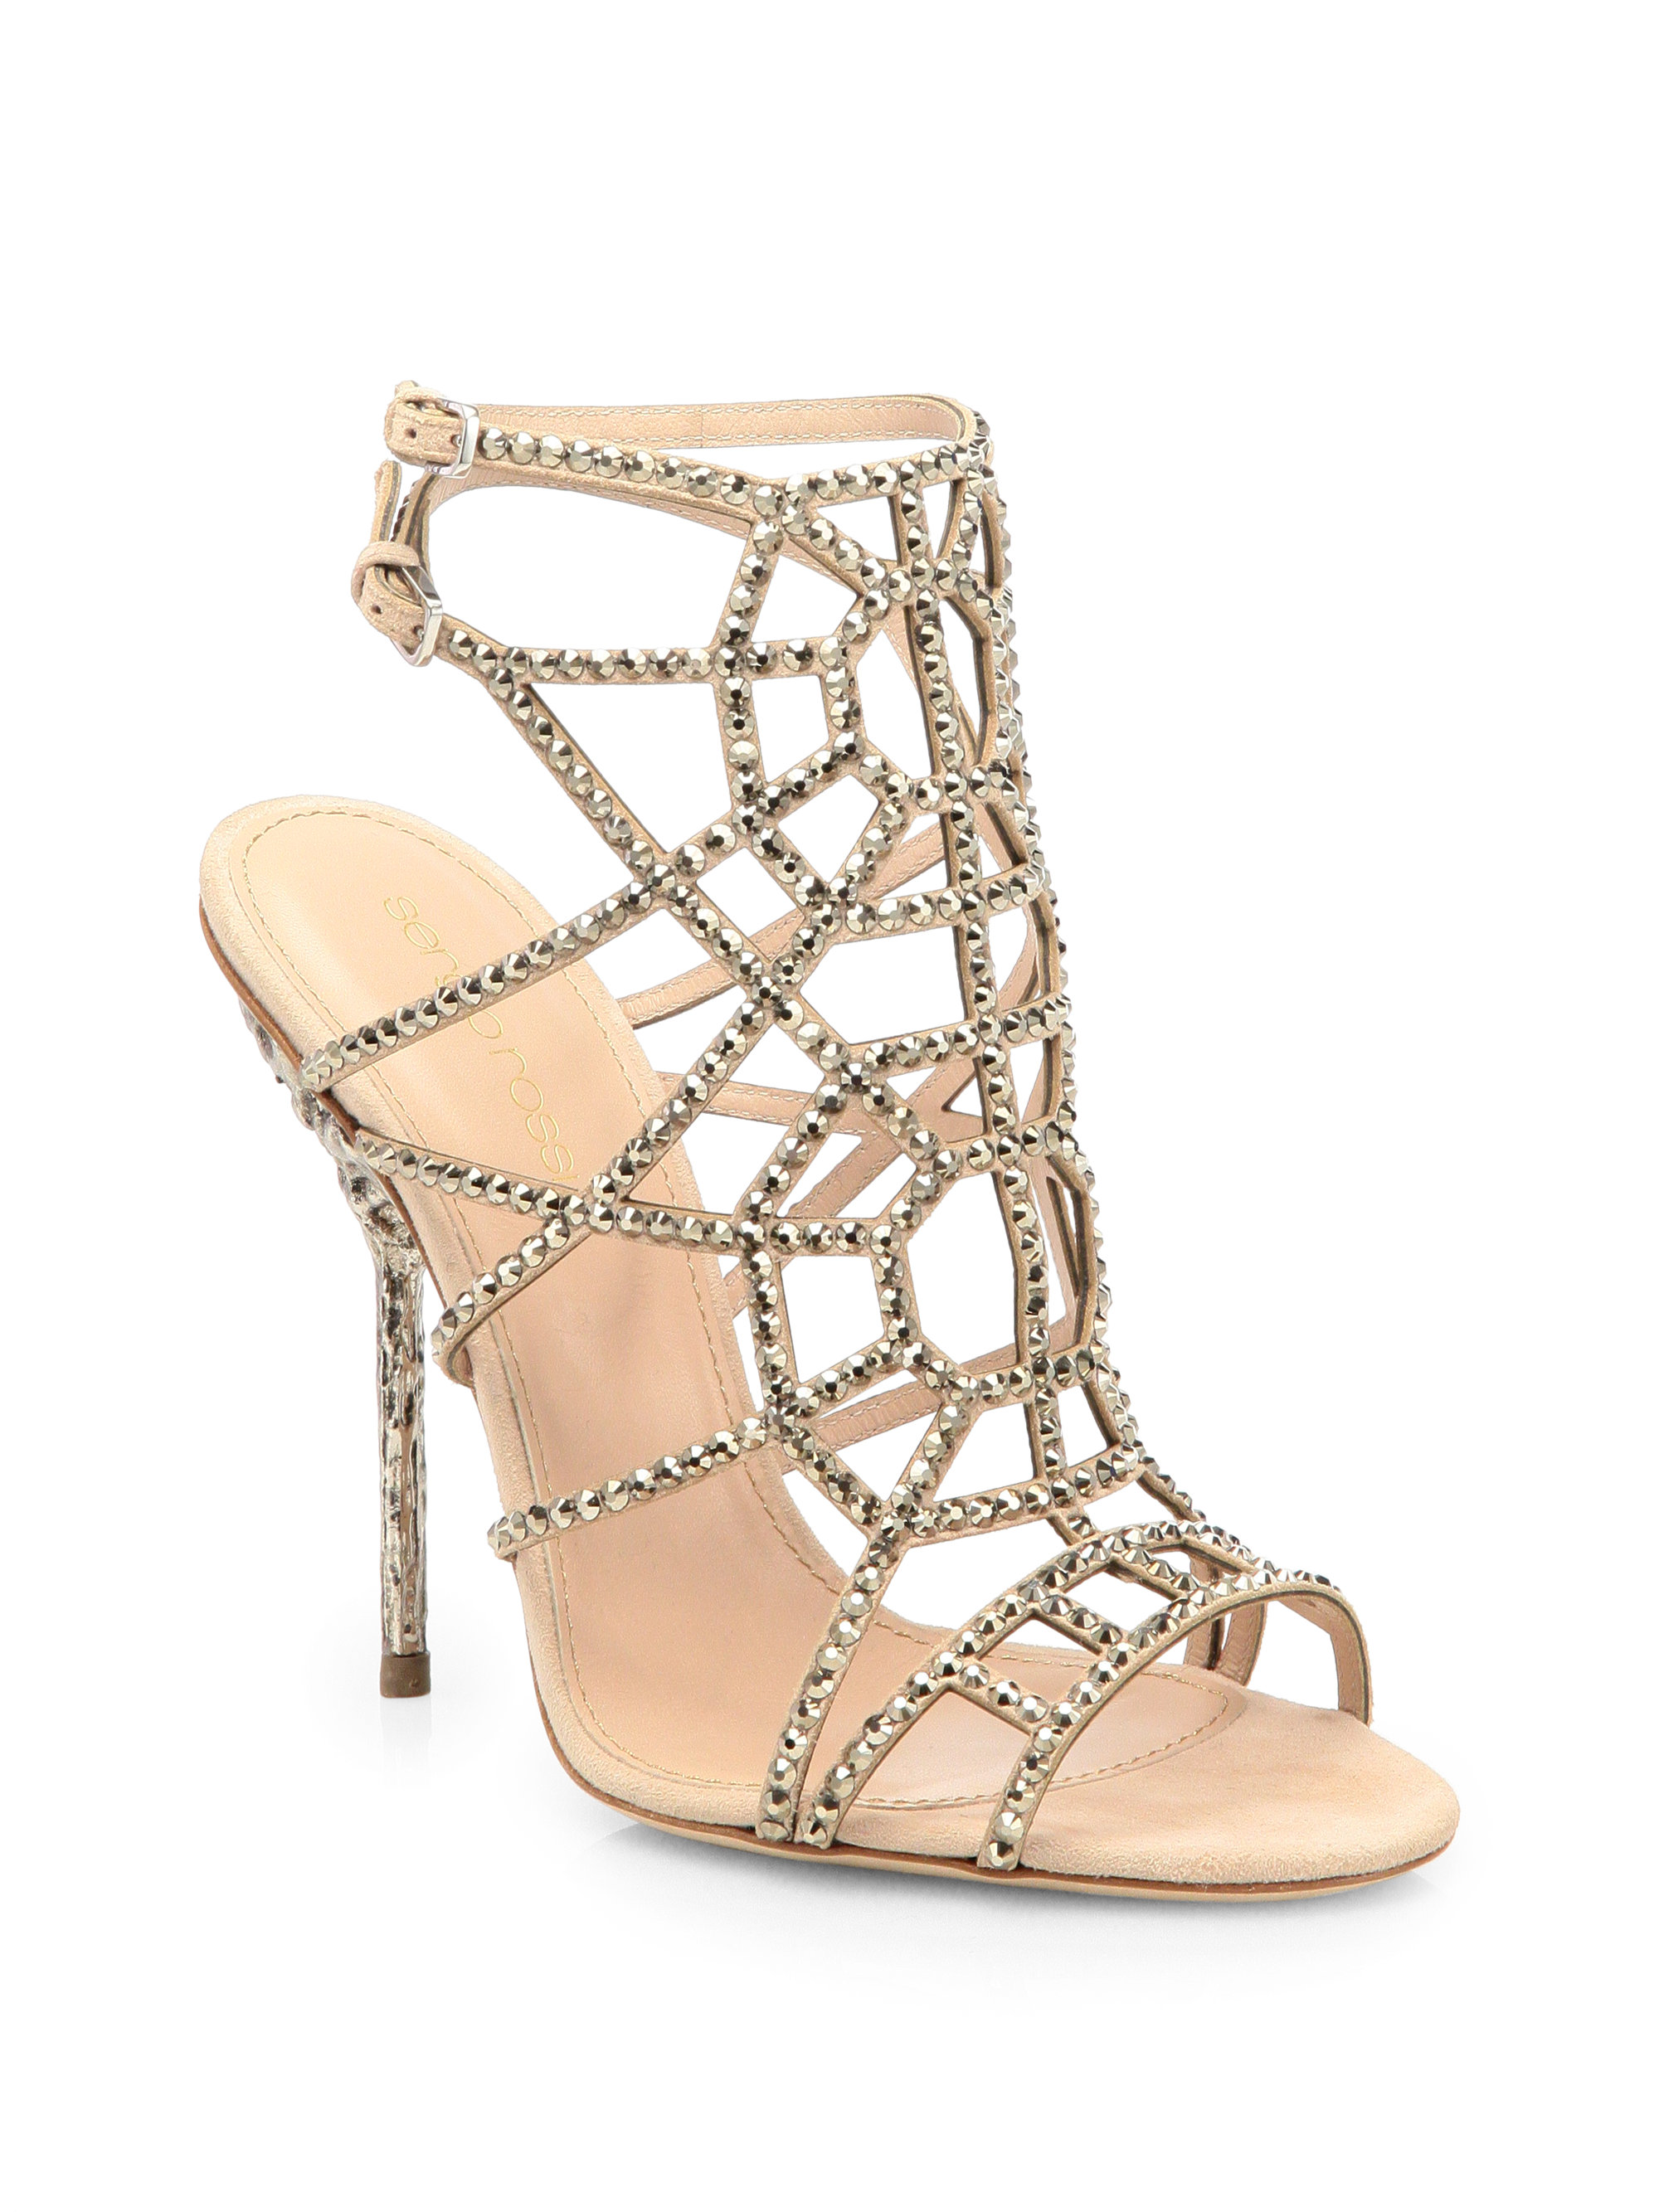 ca9477168bf5 Sergio Rossi Crystal Suede Puzzle Sandals in Natural - Lyst